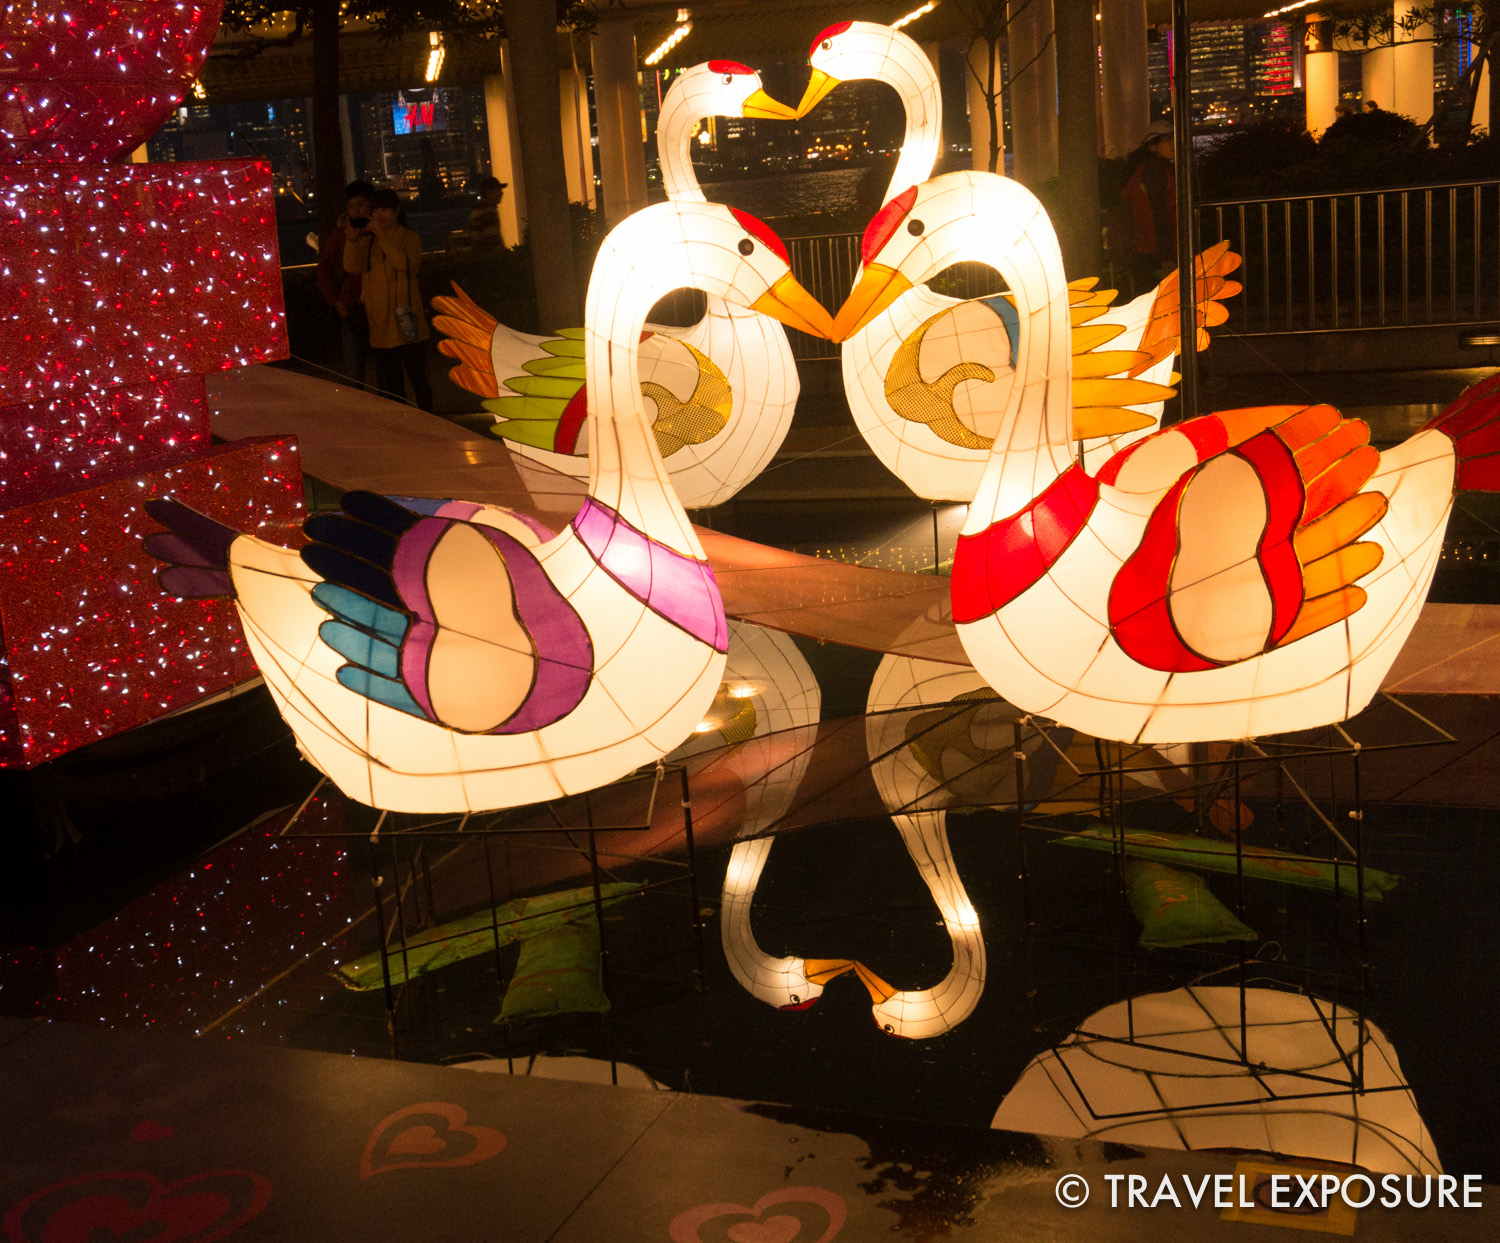 A cute love-themed lantern display as part of the Lantern Festival, marking the end of the Chinese New Year